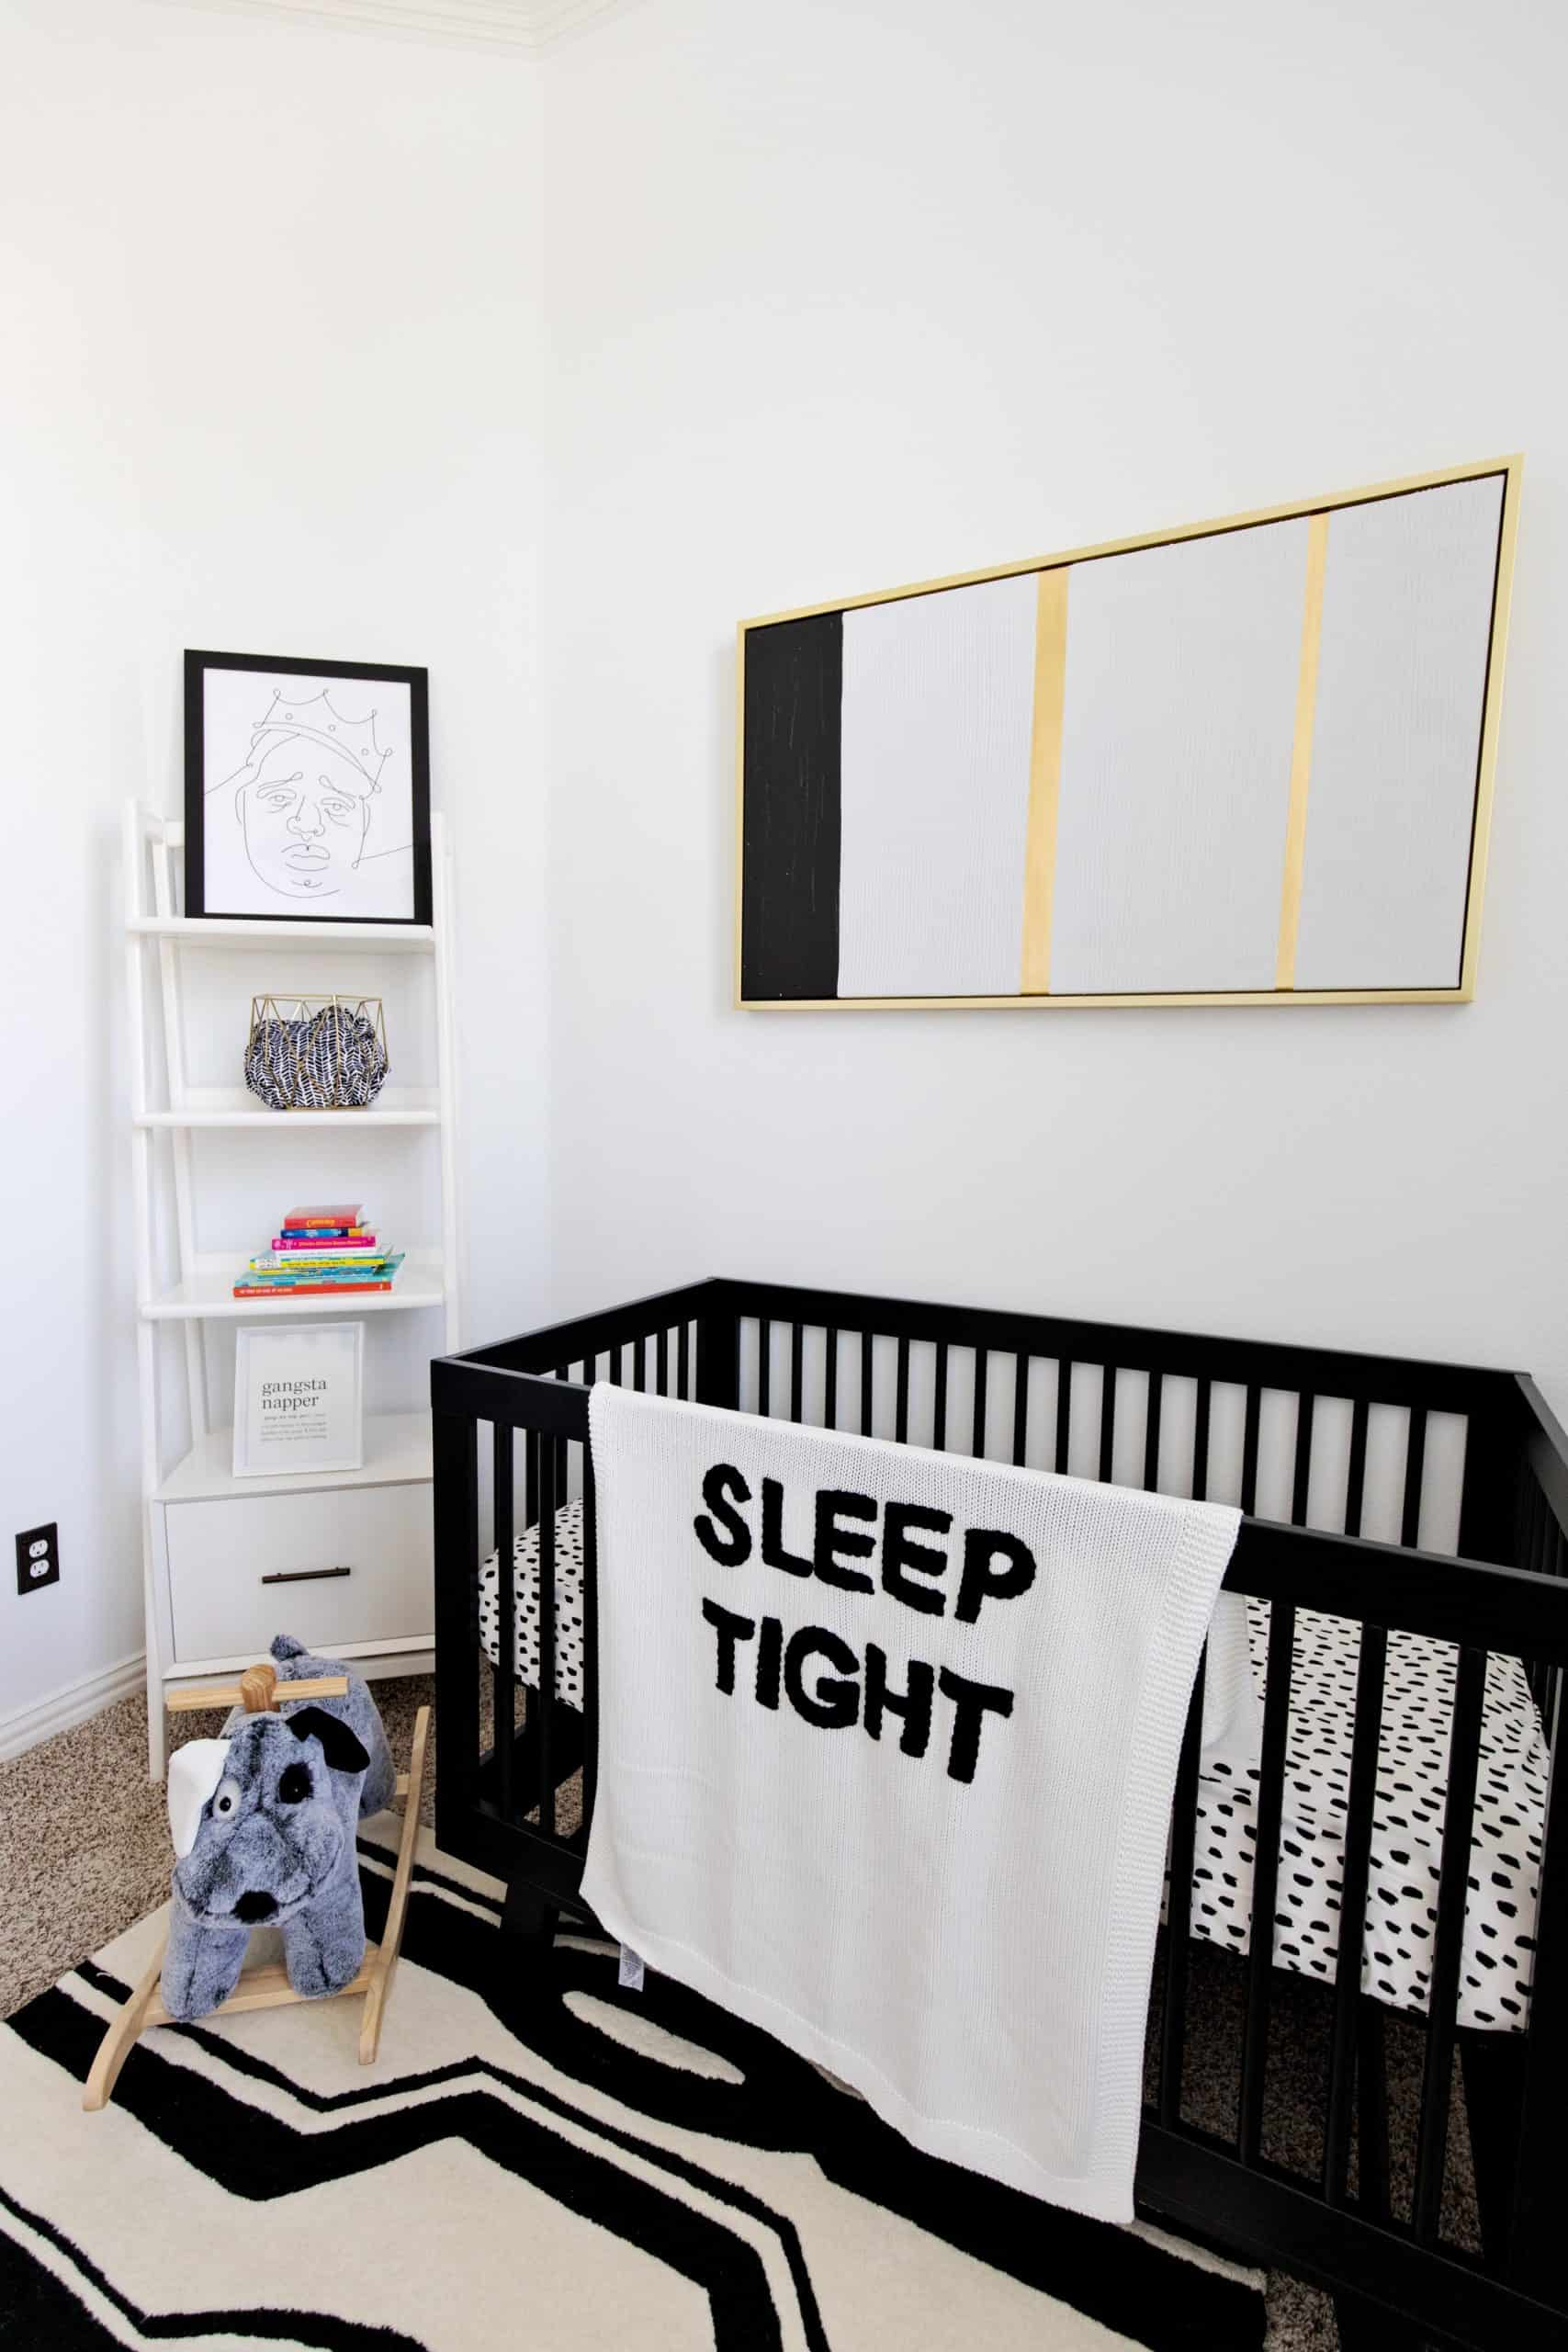 Baby Nursery by popular Dallas life and style blog, Glamorous Versatility: image of a baby nursery decorated with a Ellis Extra Wide Dresser And Topper Set, Knox Convertible Crib, Tyler Square Arm Swivel Glider & Recliner, west elm x pbk Mid-Century Narrow Tower Bookcase, Stella Side Table, Lullaby® Supreme Crib Mattress, Black and White Storage Collection (Large), Acrylic and Metallic Nursery Storage (Diaper Caddy & Table Storage), Metal Prism Storage, Acrylic Wall Shelf, Ubbi Diaper Pails, west elm x pbk Petite Arc Metal Floor Lamp, west elm x pbk Mid Century Puppy Plush Rocker, Coco Rug, Kingston Pendant, Finn + Emma® Mischief the Mouse Big Buddy & Rattle Buddy, Sleep Tight Baby Blanket, Lightning Pillow Arrow Sham, Black Brush Stroke Boppy® Nursing & Infant Support Pillow & Slipcover, Window Pane Muslin Swaddle Set, Chamois Broken Arrow Baby Blanket, Organic Black Brushstroke Dot Fitted Crib Sheet, west elm x pbk Organic Matelasse Changing Pad Cover, Modern Letters, Gilded Painted Art, Biggie Smalls Wall Trio, and Rapper's Delight Wall Art by Honeymoon. Hotel